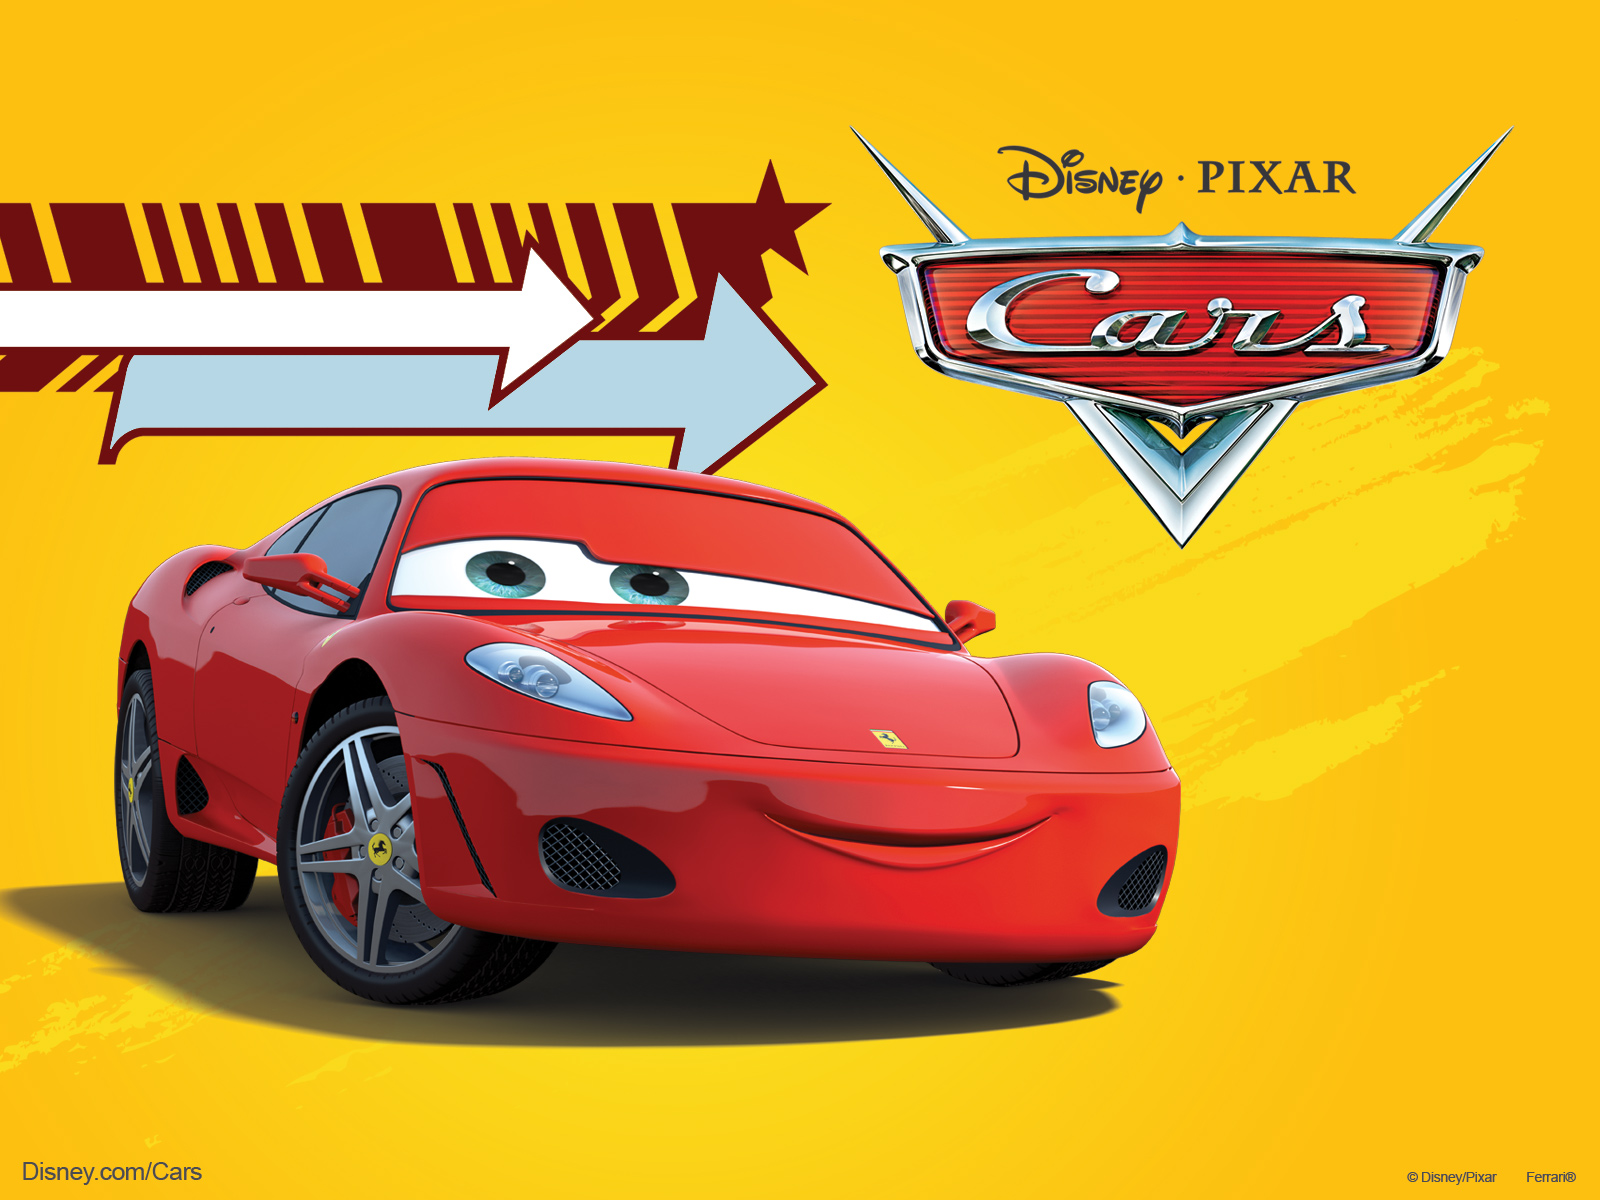 Michael Schumacher As A Ferrari F430 In Pixars Cars Movie Desktop